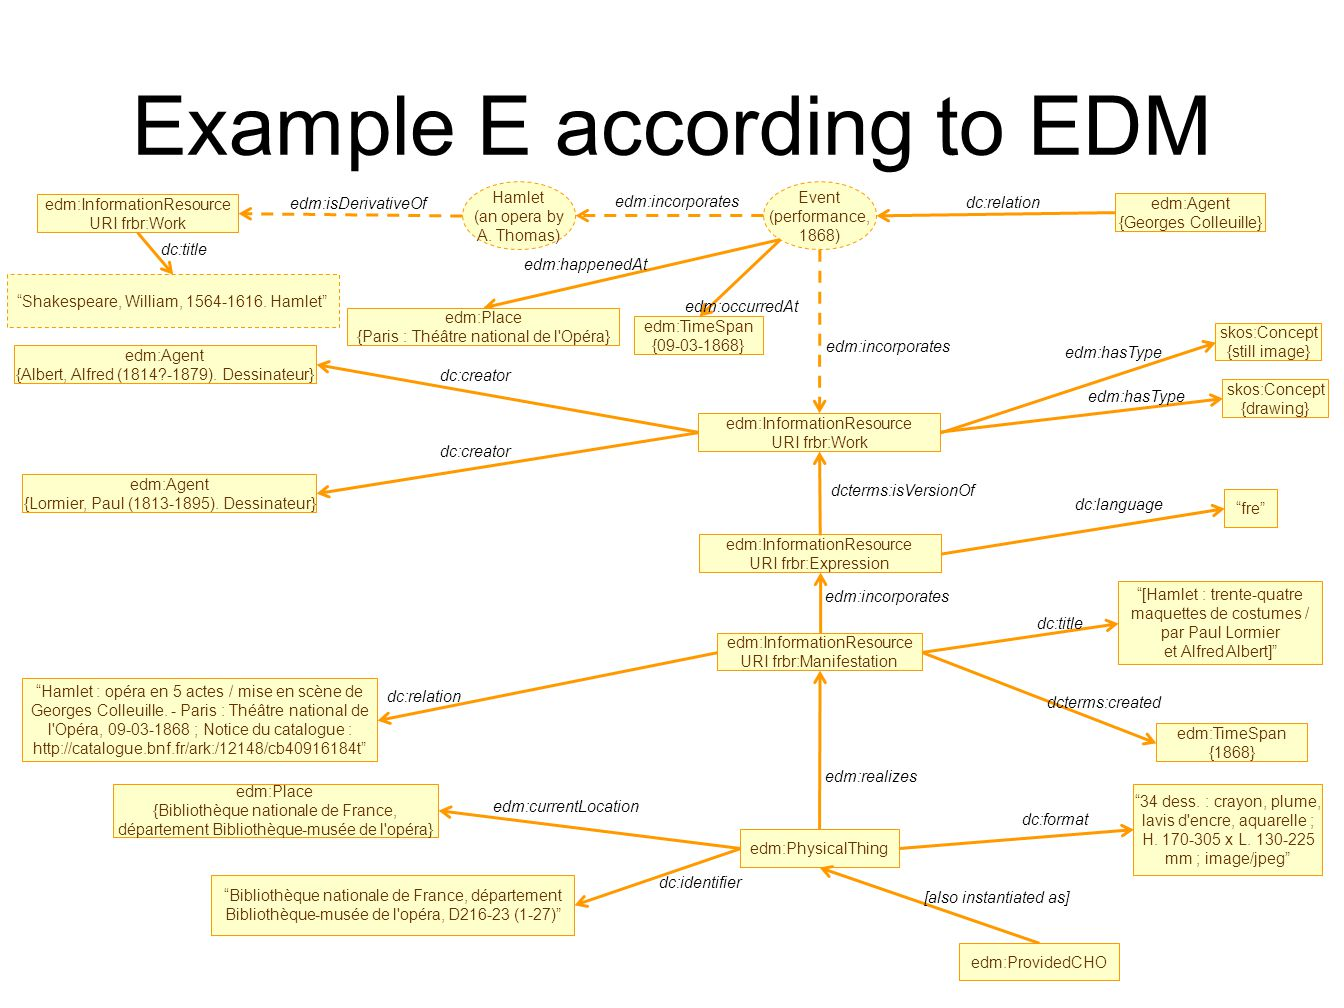 Example E according to EDM edm:InformationResource URI frbr:Work fre dc:language edm:Agent {Albert, Alfred (1814 -1879).